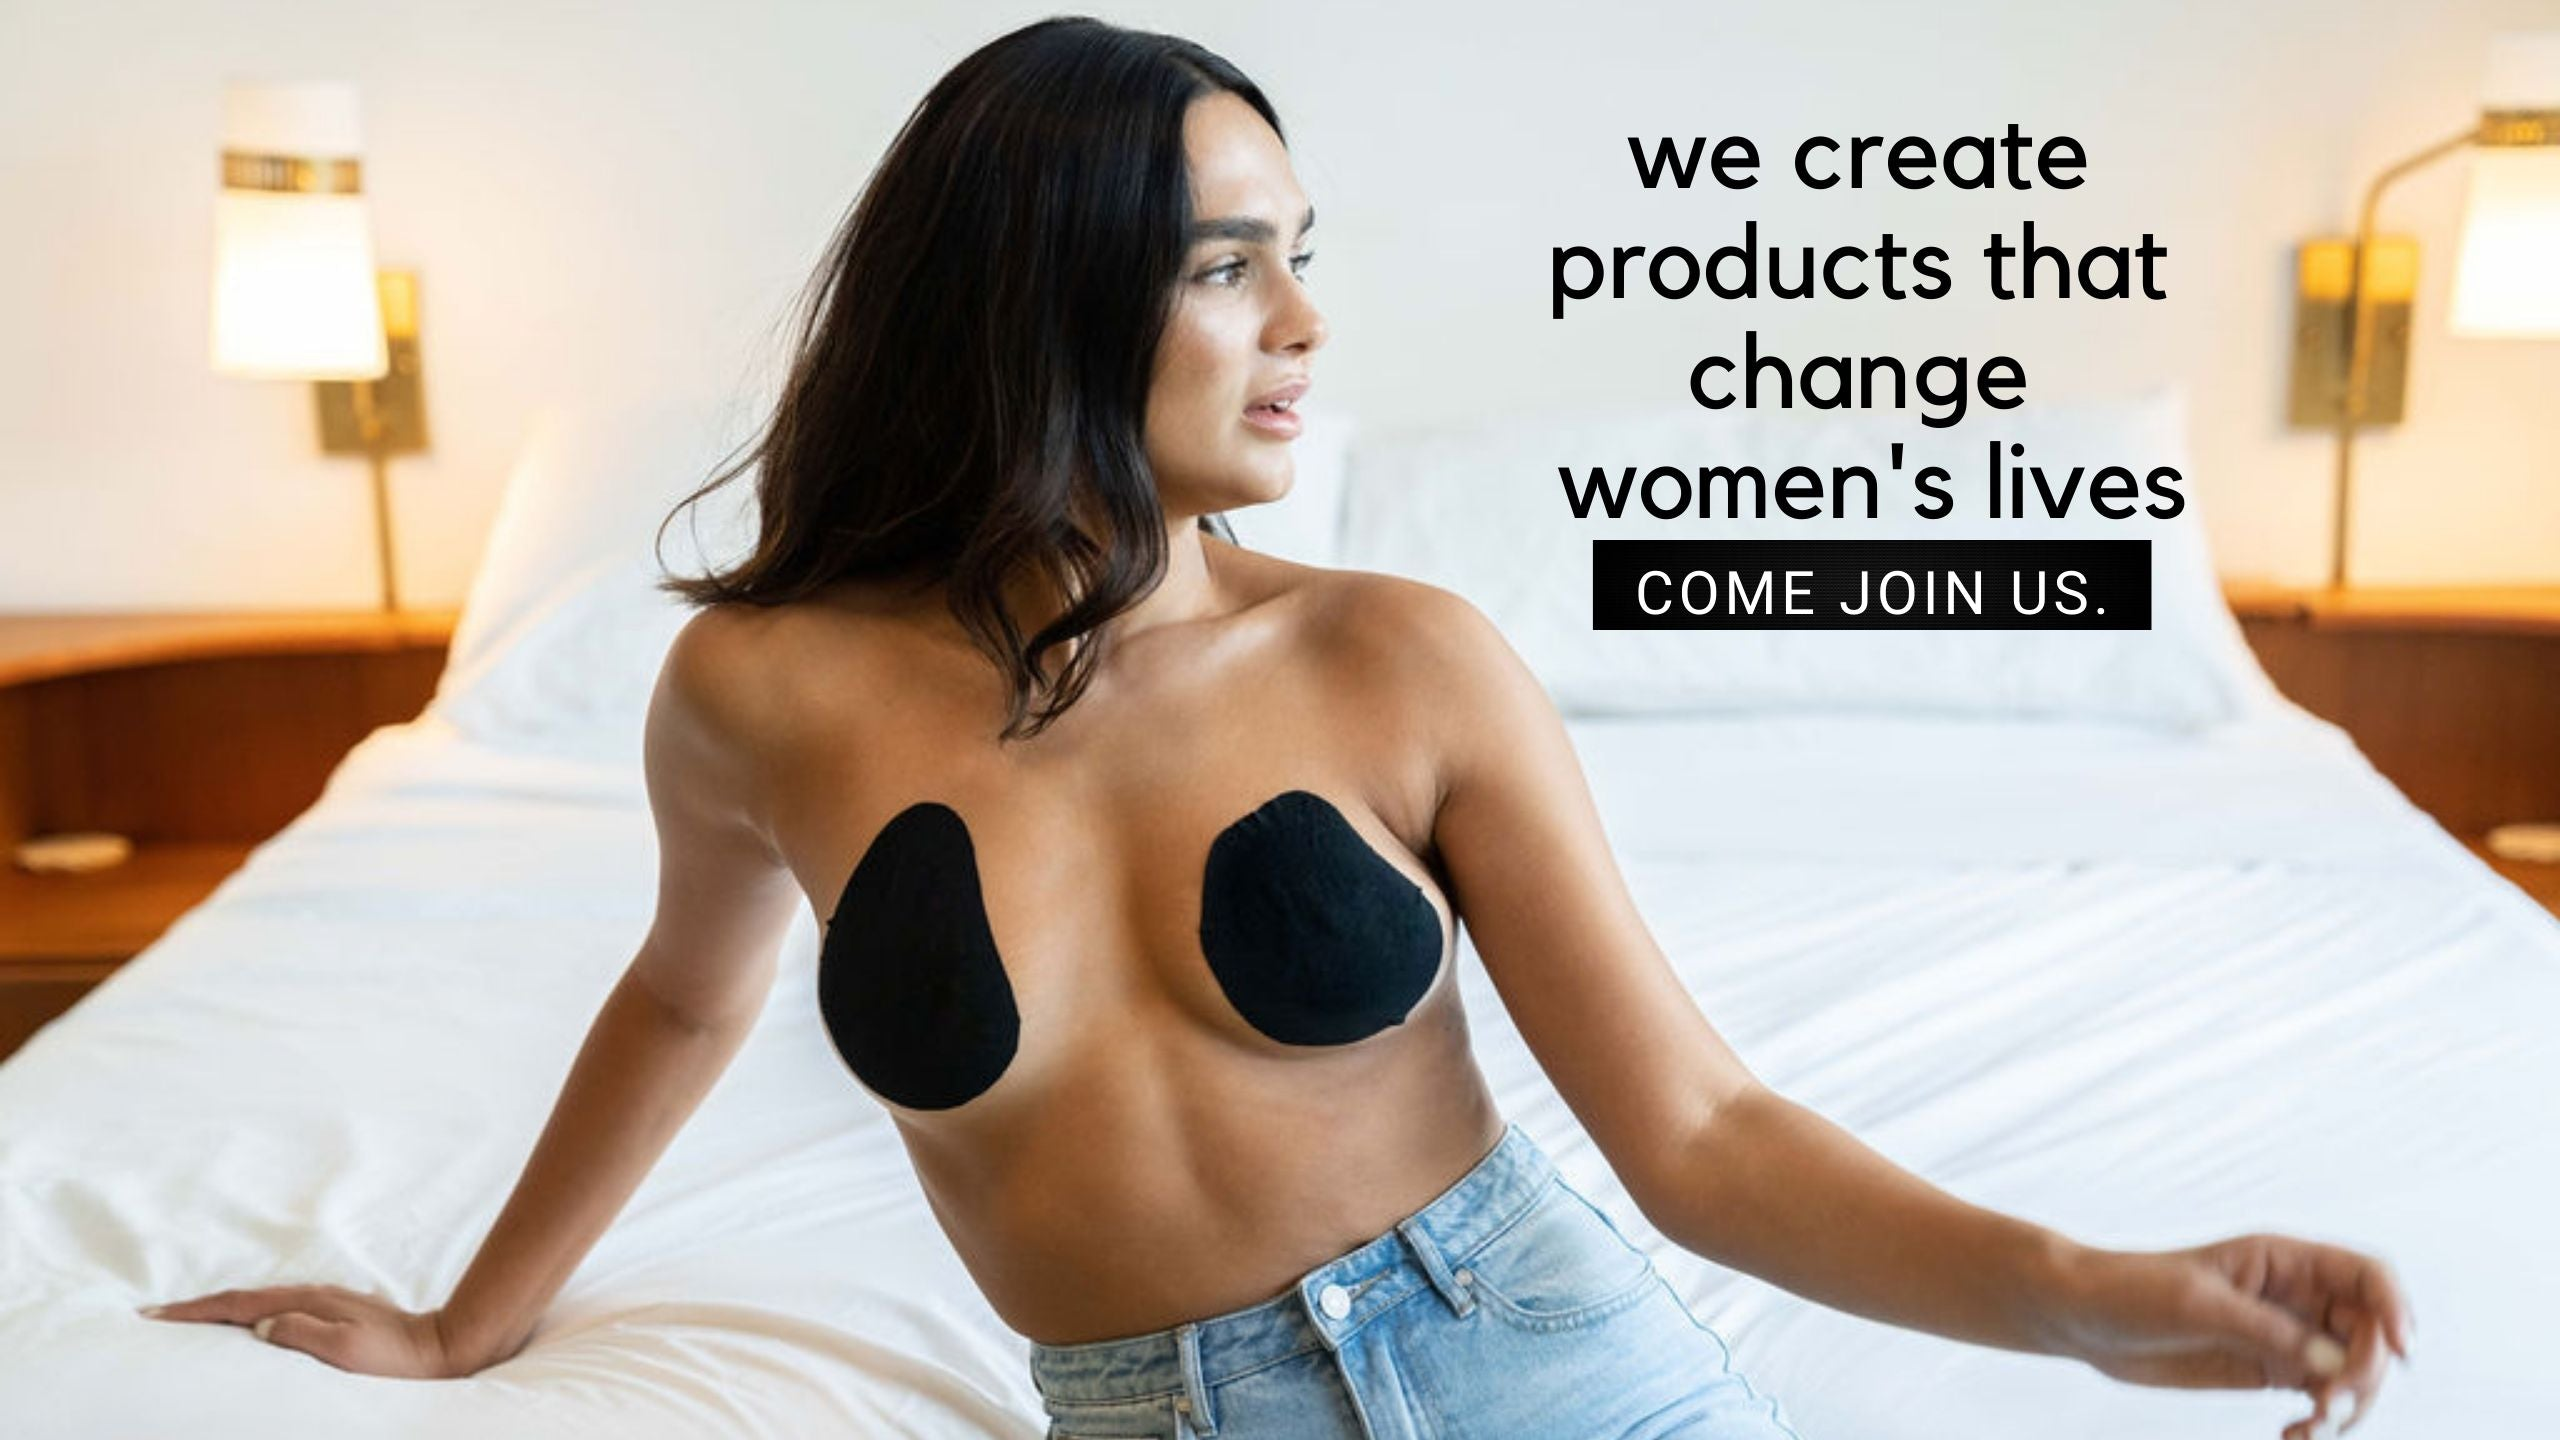 We create products that change women's lives. Come join us.